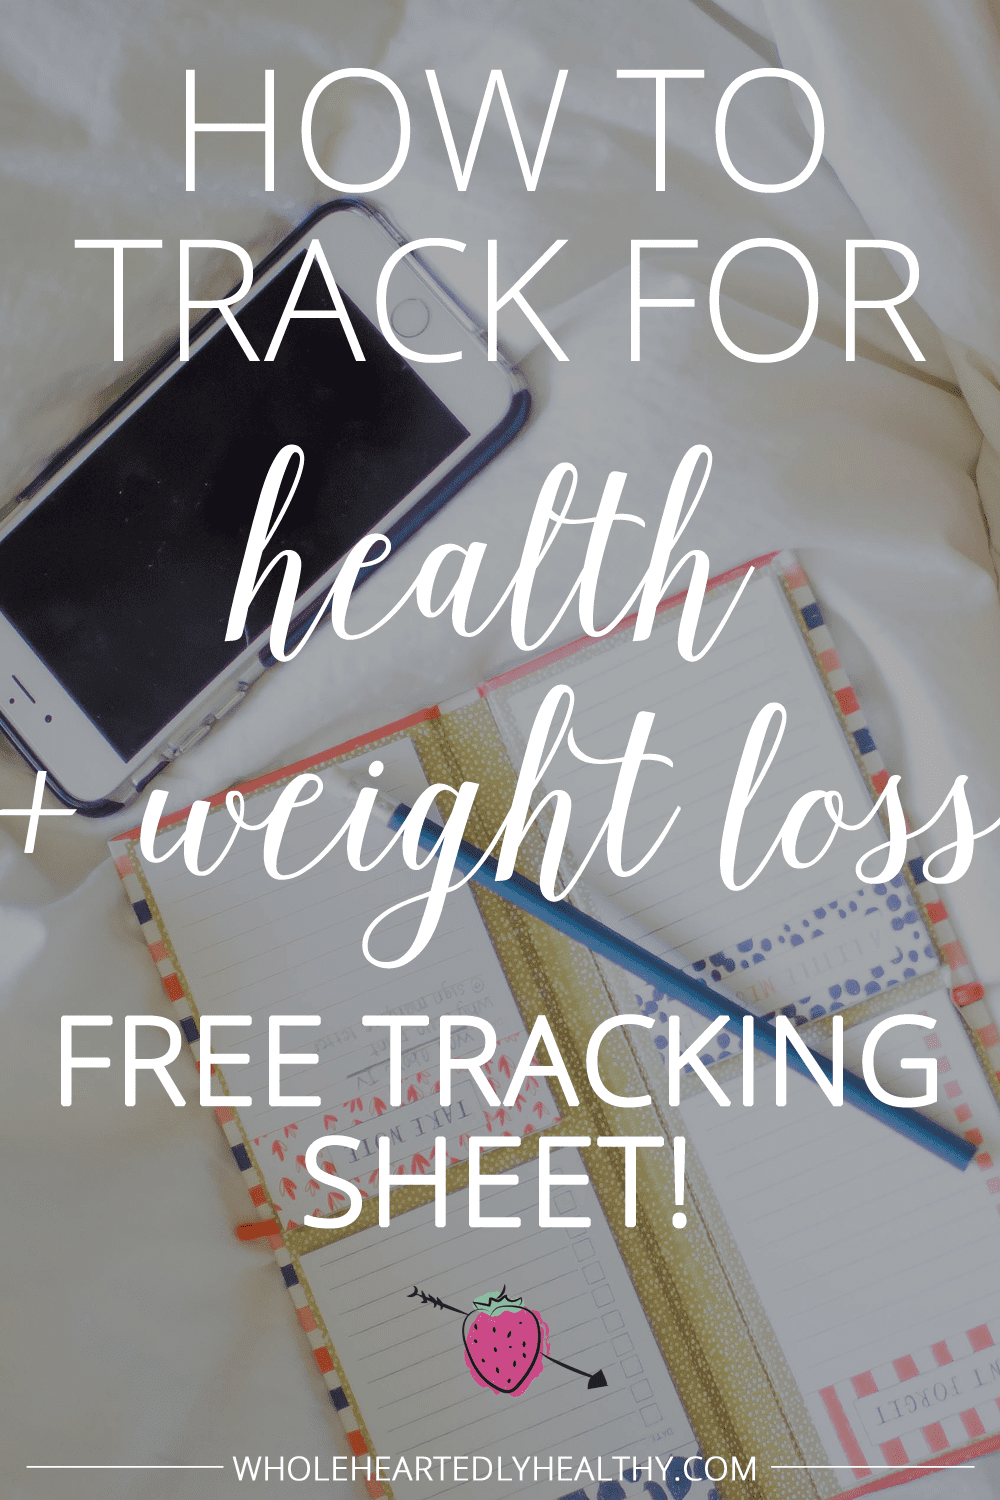 How to track for health and weight loss